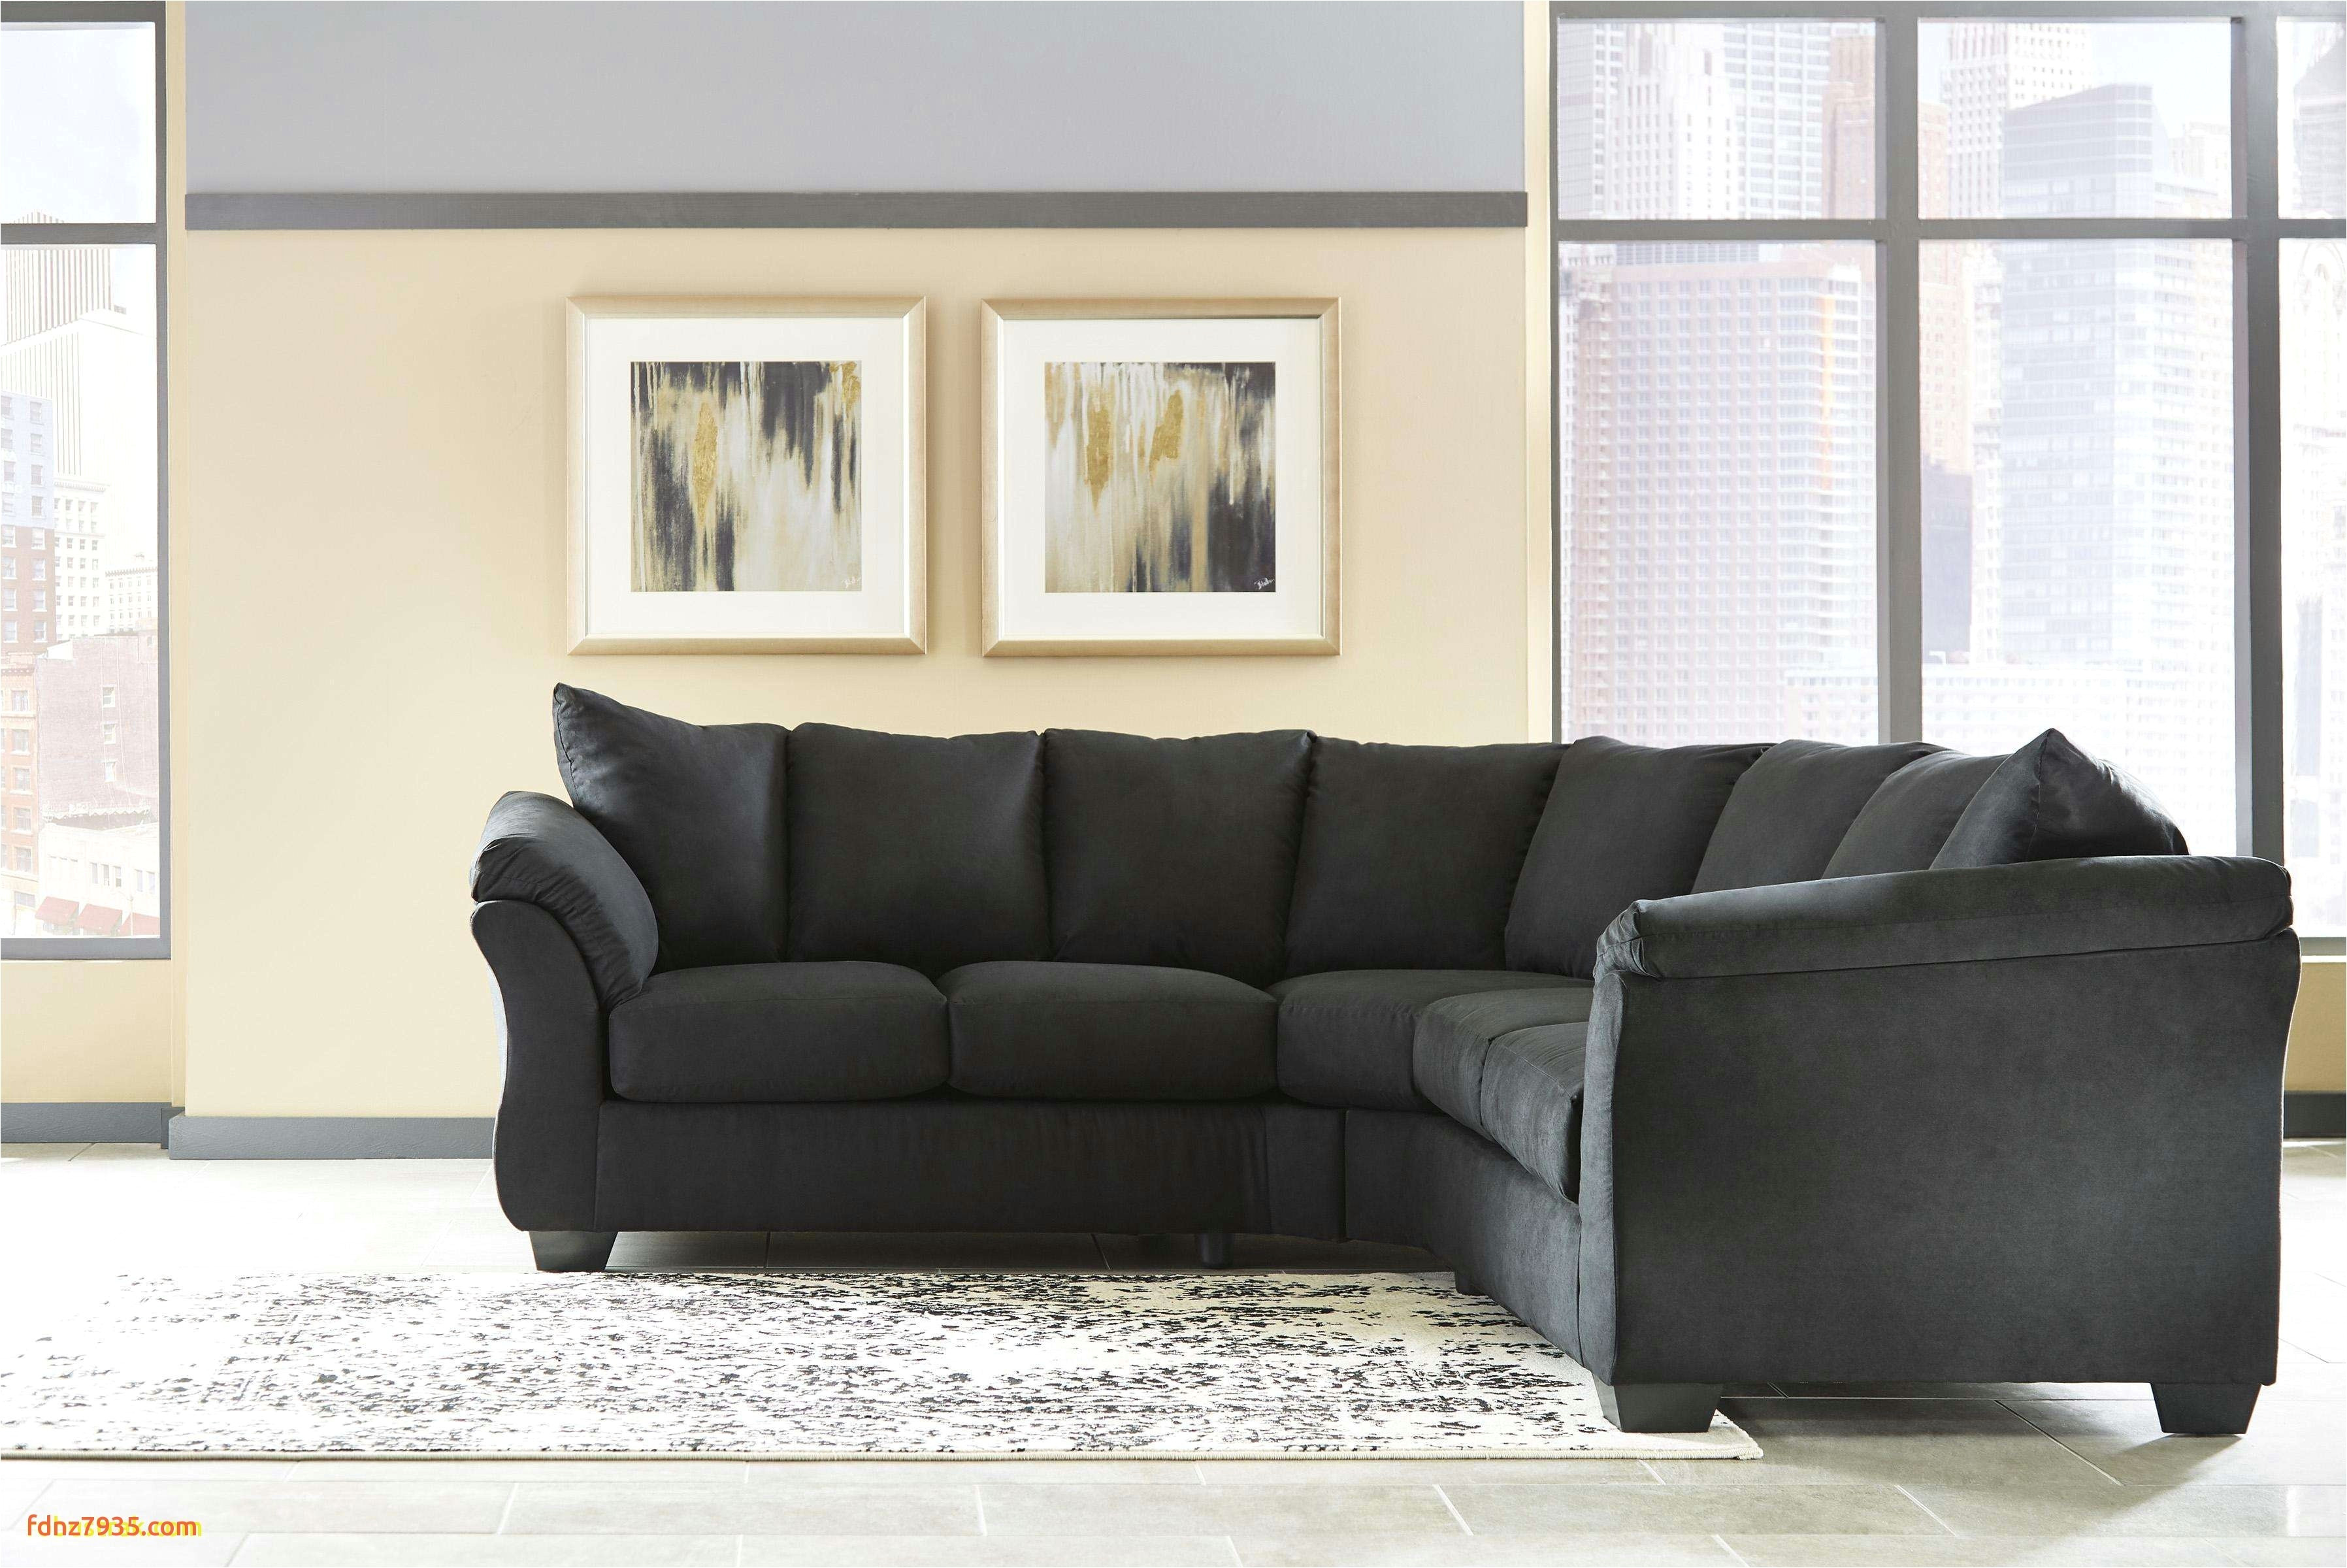 living room ideas with sectional sofas luxury sectional couch 0d tags fabulous new sectional couch magnificent